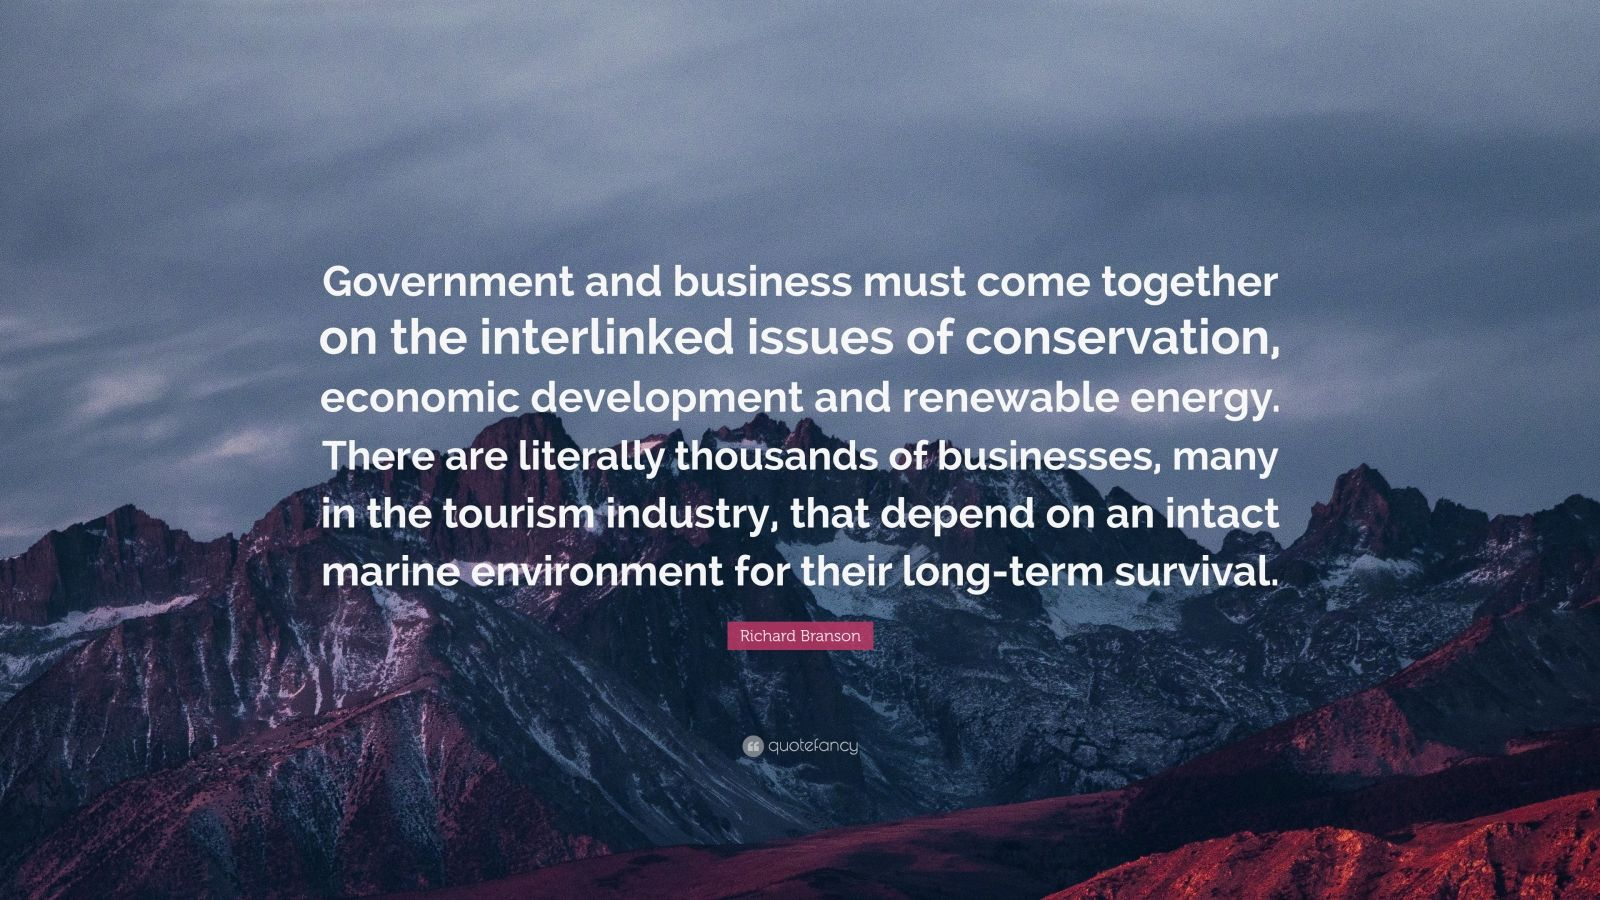 """Richard Branson Quote: """"Government and business must come together on the interlinked issues of conservation, economic development and renewable energy. There are literally thousands of businesses, many in the tourism industry, that depend on an intact marine environment for their long-term survival."""""""